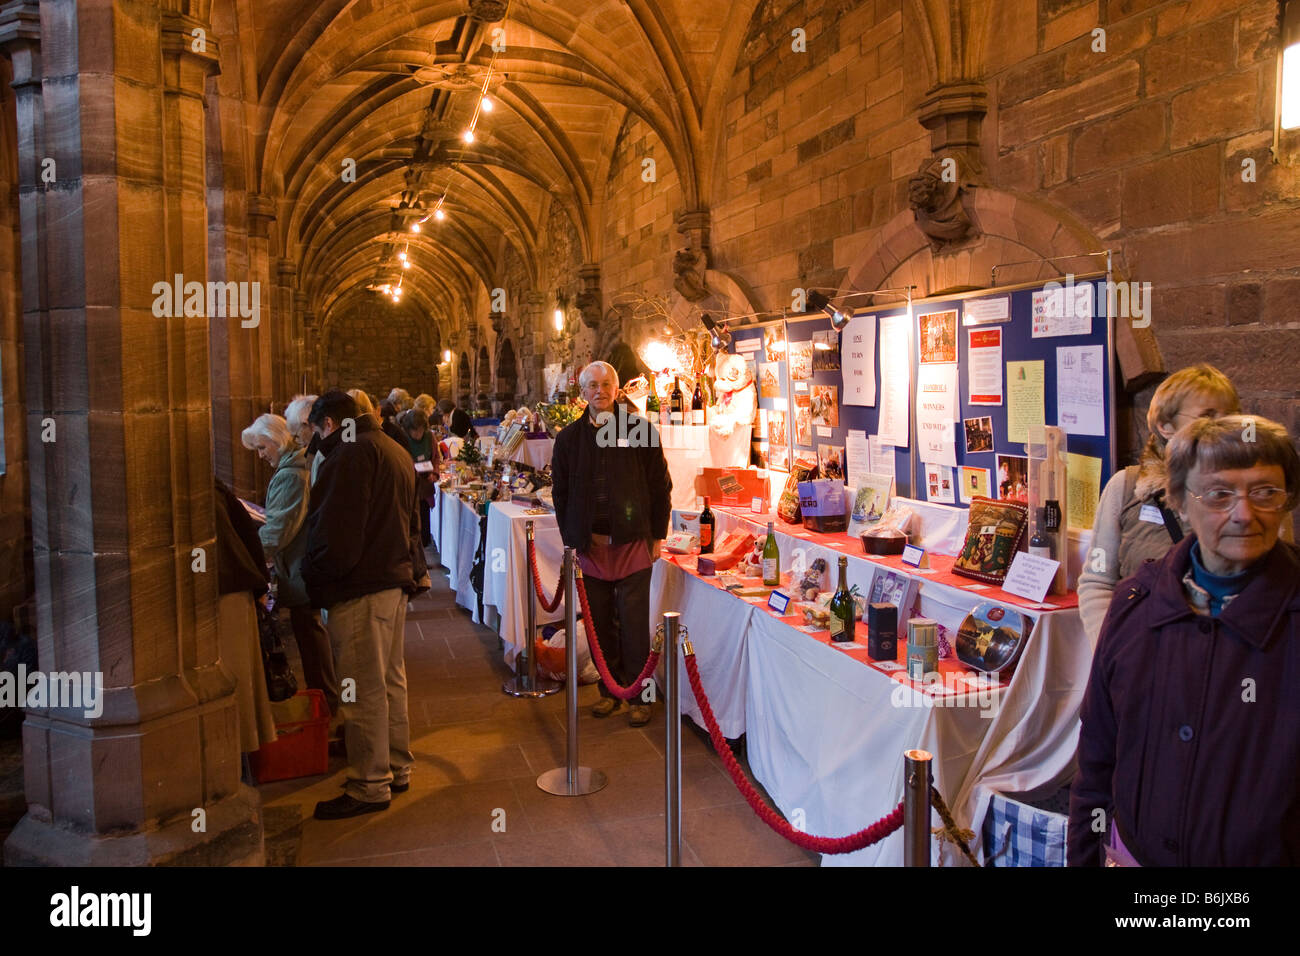 UK Cheshire Chester Cathedral cloister tombola stall raising funds for charity - Stock Image